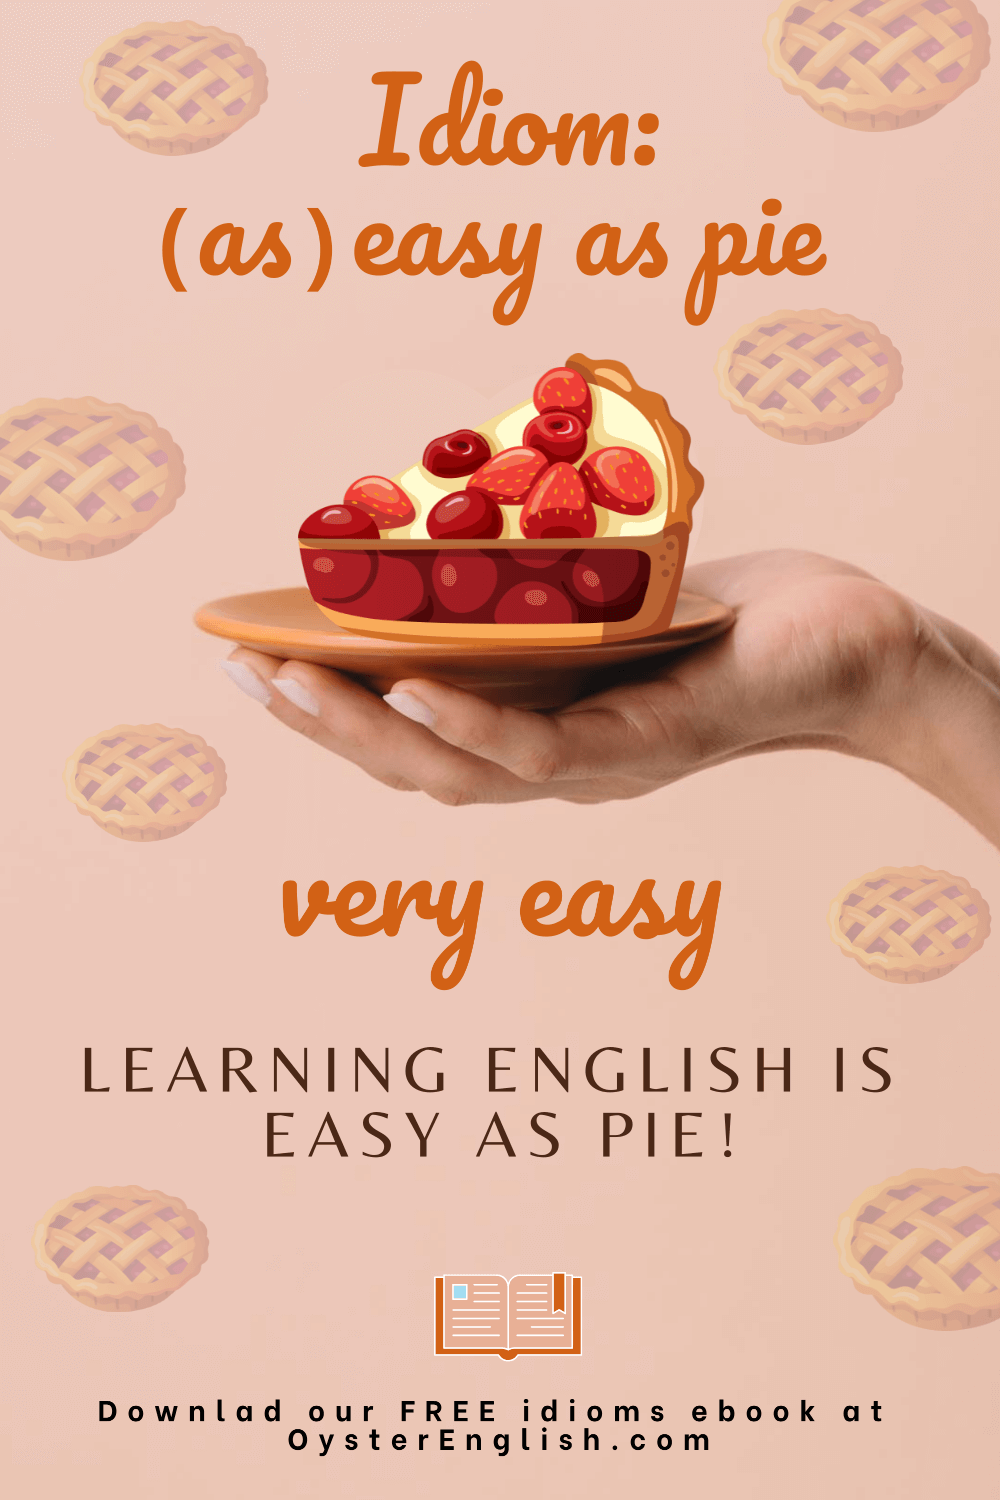 Picture of a hand holding a plate with a piece of strawberry and cherry pie to depict the idiom